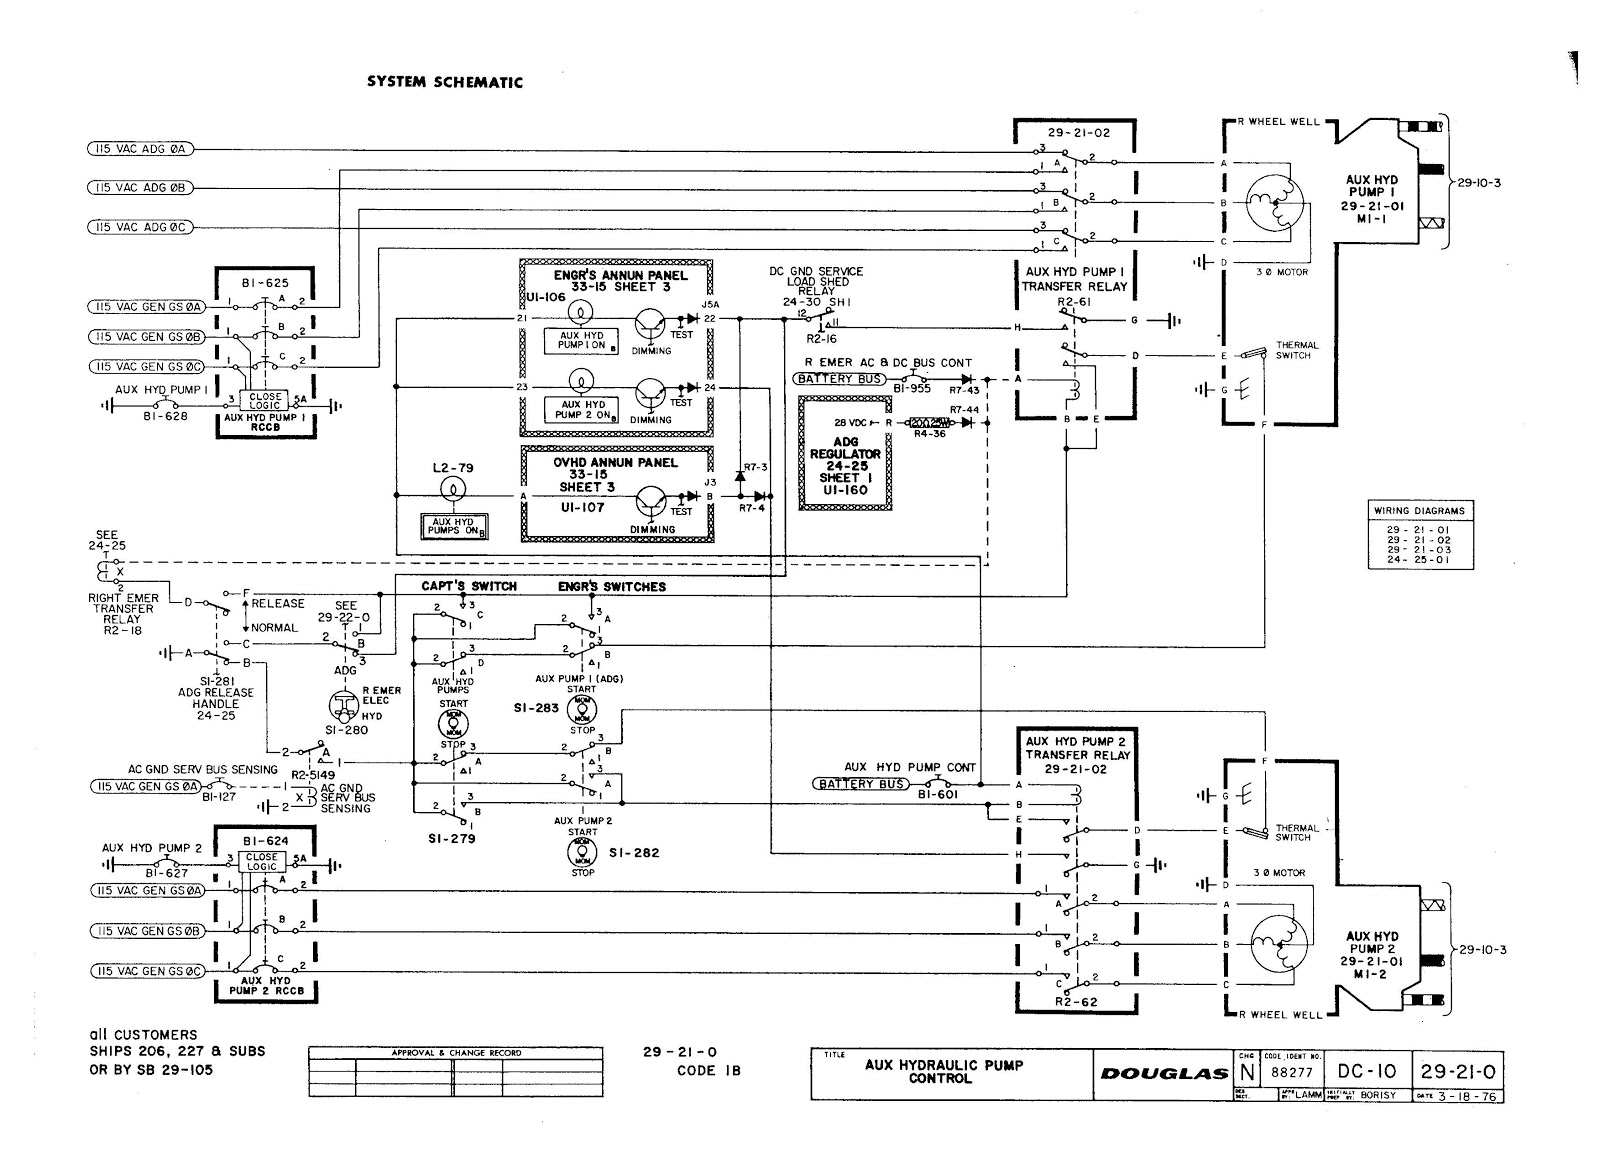 Schematic Diagram DC10 Hydraulic System